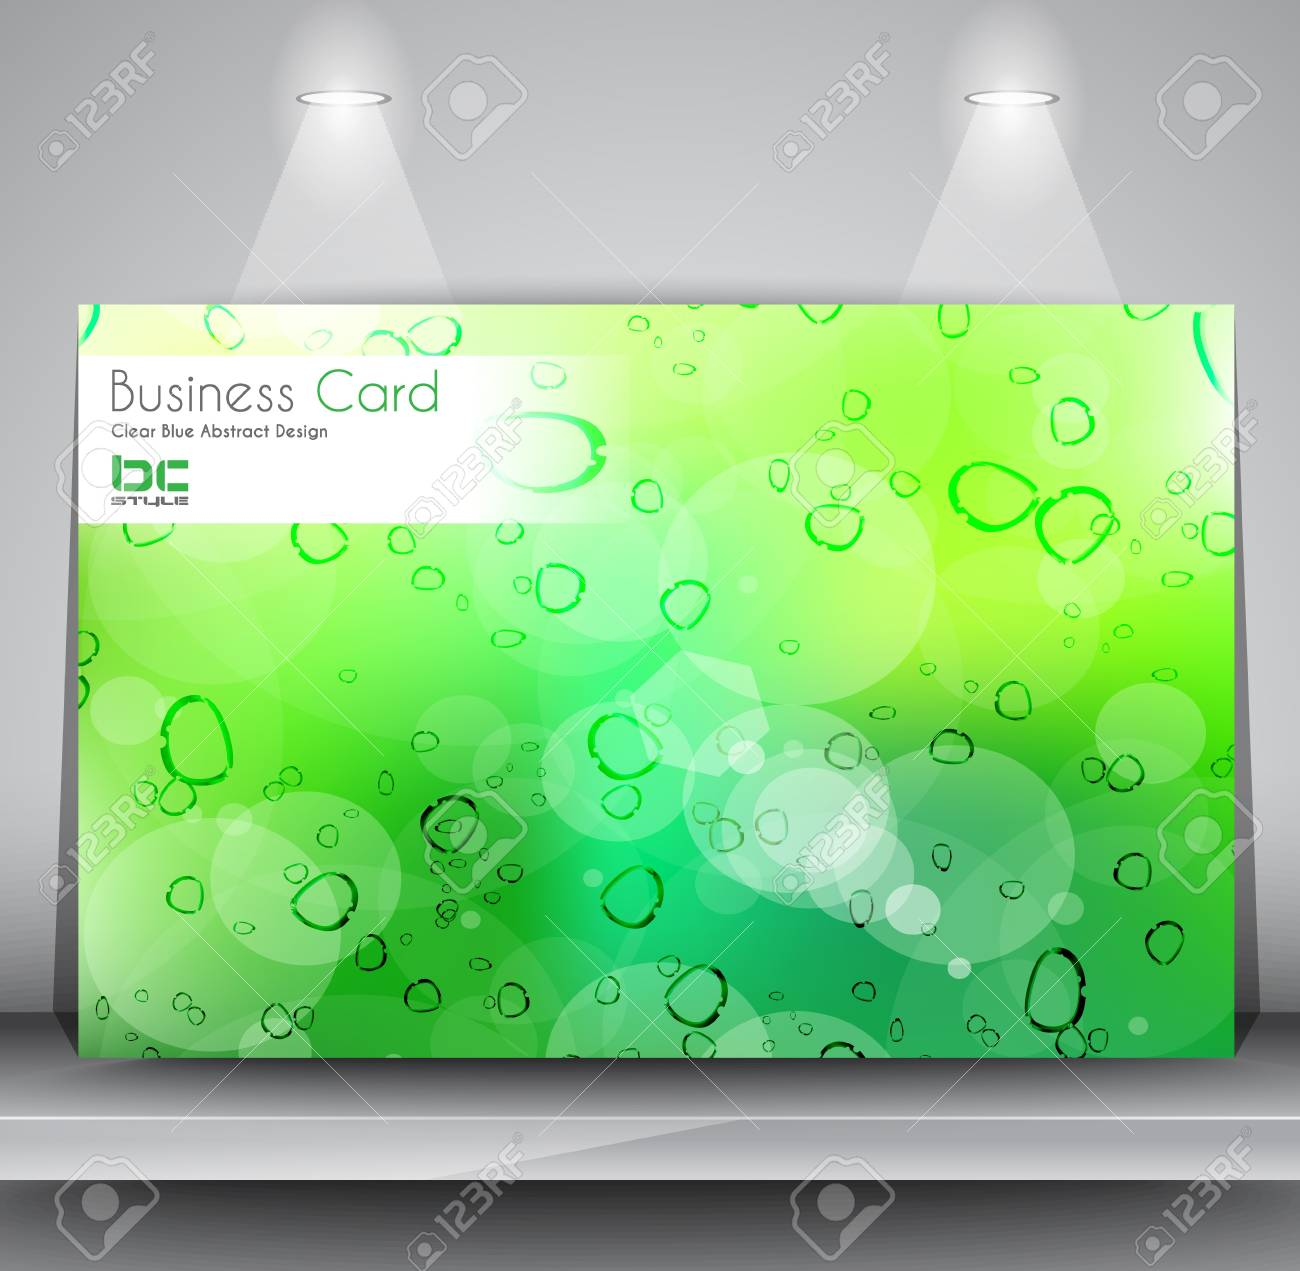 Elegant Business Card Design Template. Fully editable and ready to place your text. The card is over a shelf  with two spotlights over it. Stock Vector - 17962623